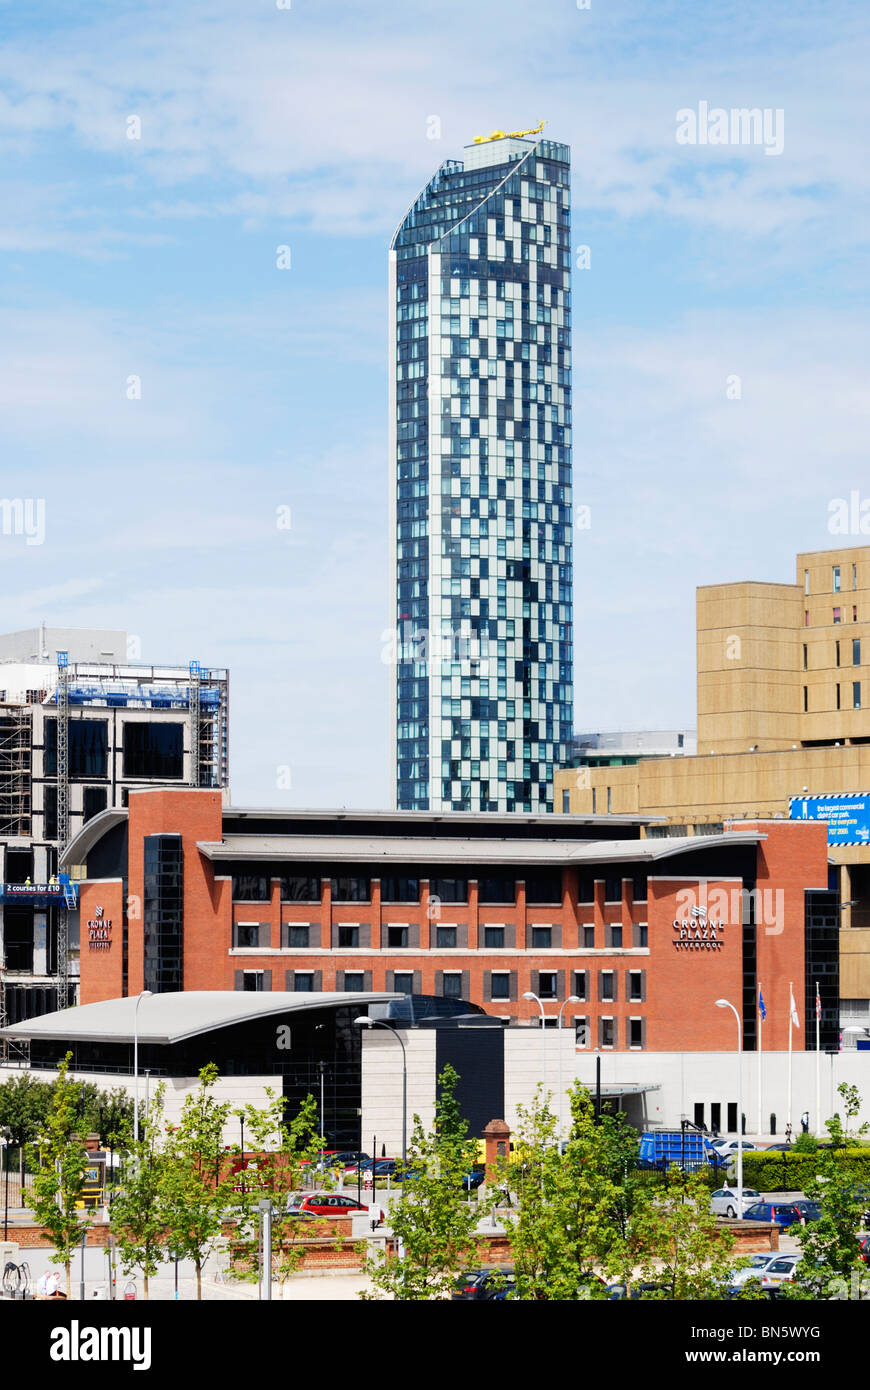 The Beetham Tower West, Liverpools tallest building (2008) at 90 metres 295 feet high and Crowne Plaza Hotel Stock Photo